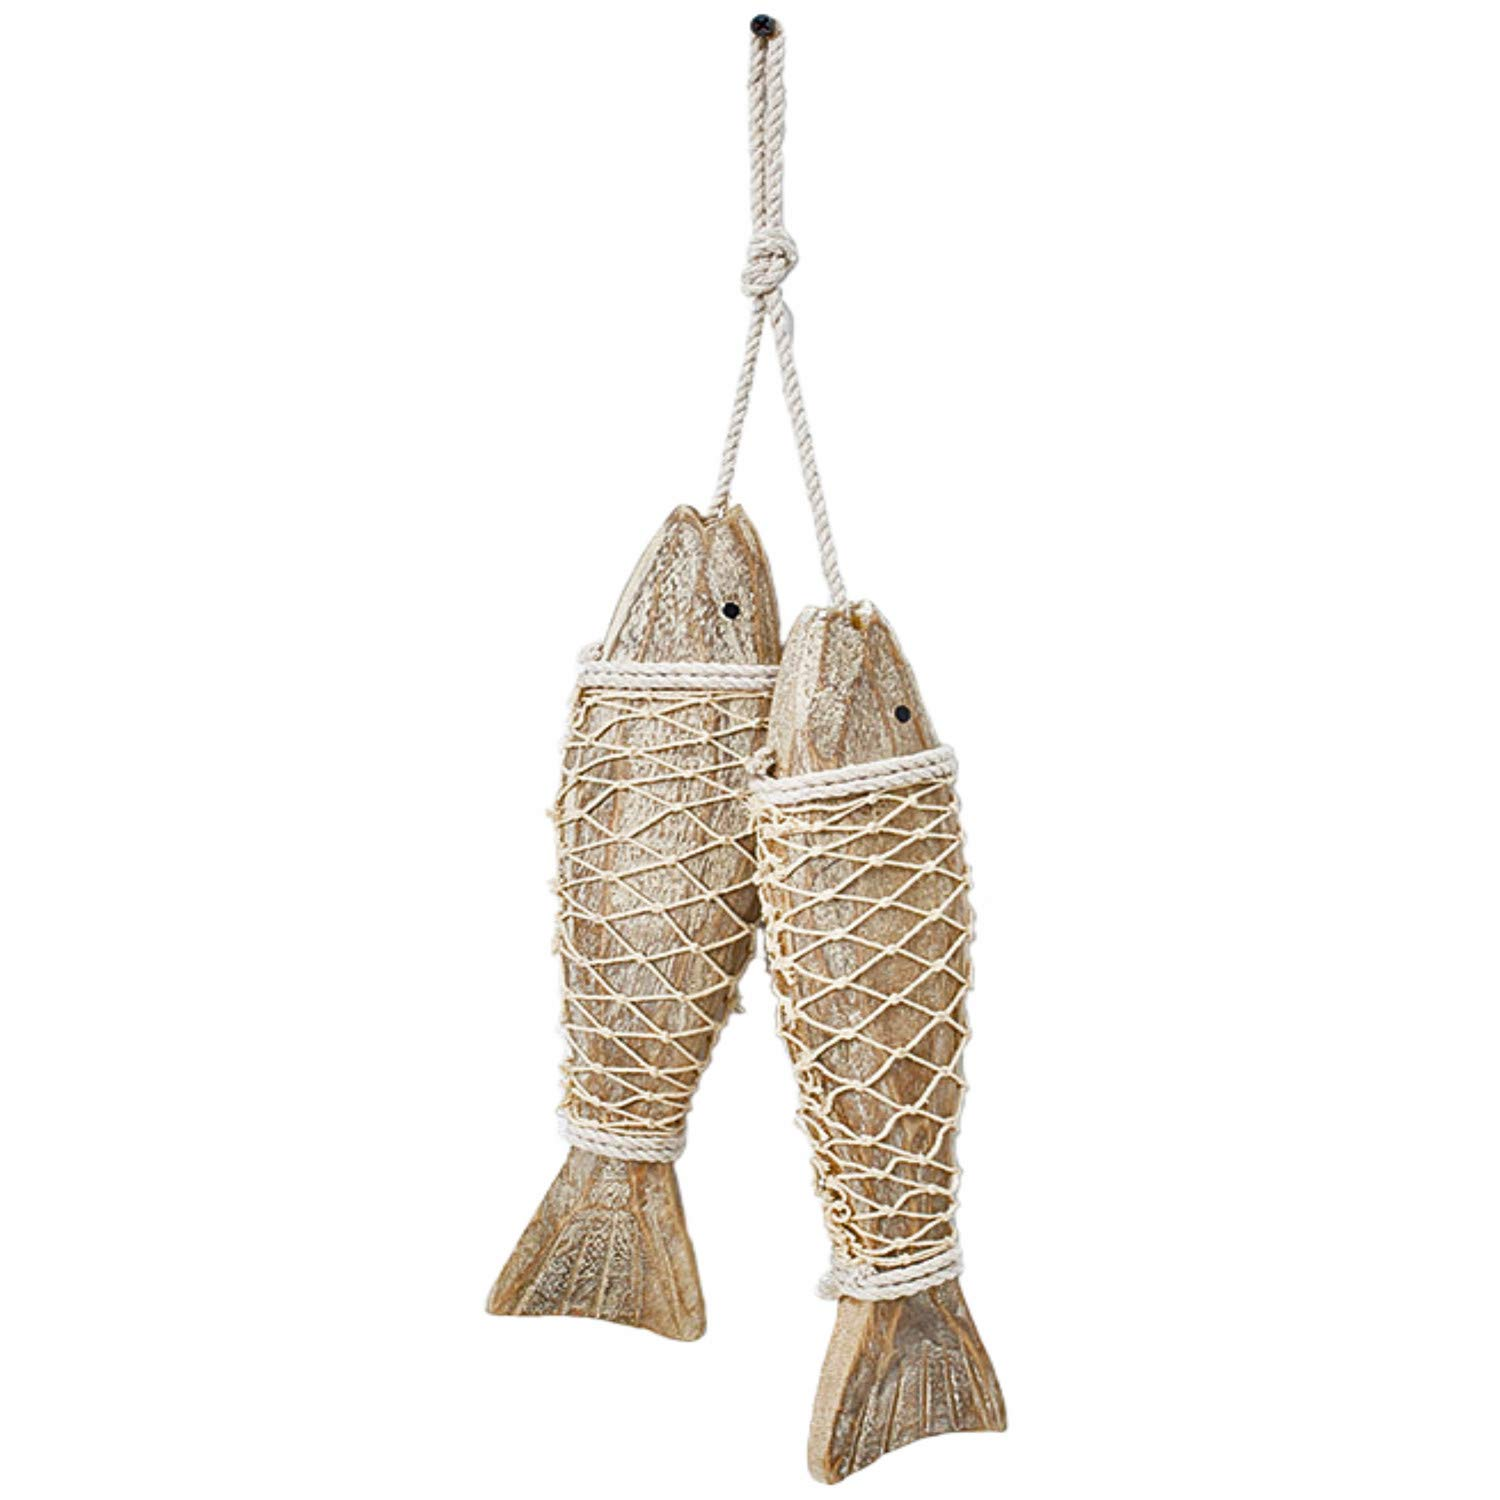 D-Fokes Hanging Vintage Wooden Fish Wall Art Decor Handcrafts Mediterranean Style Home Decor Nautical Theme Wall Ornament 12.6 inch Tall